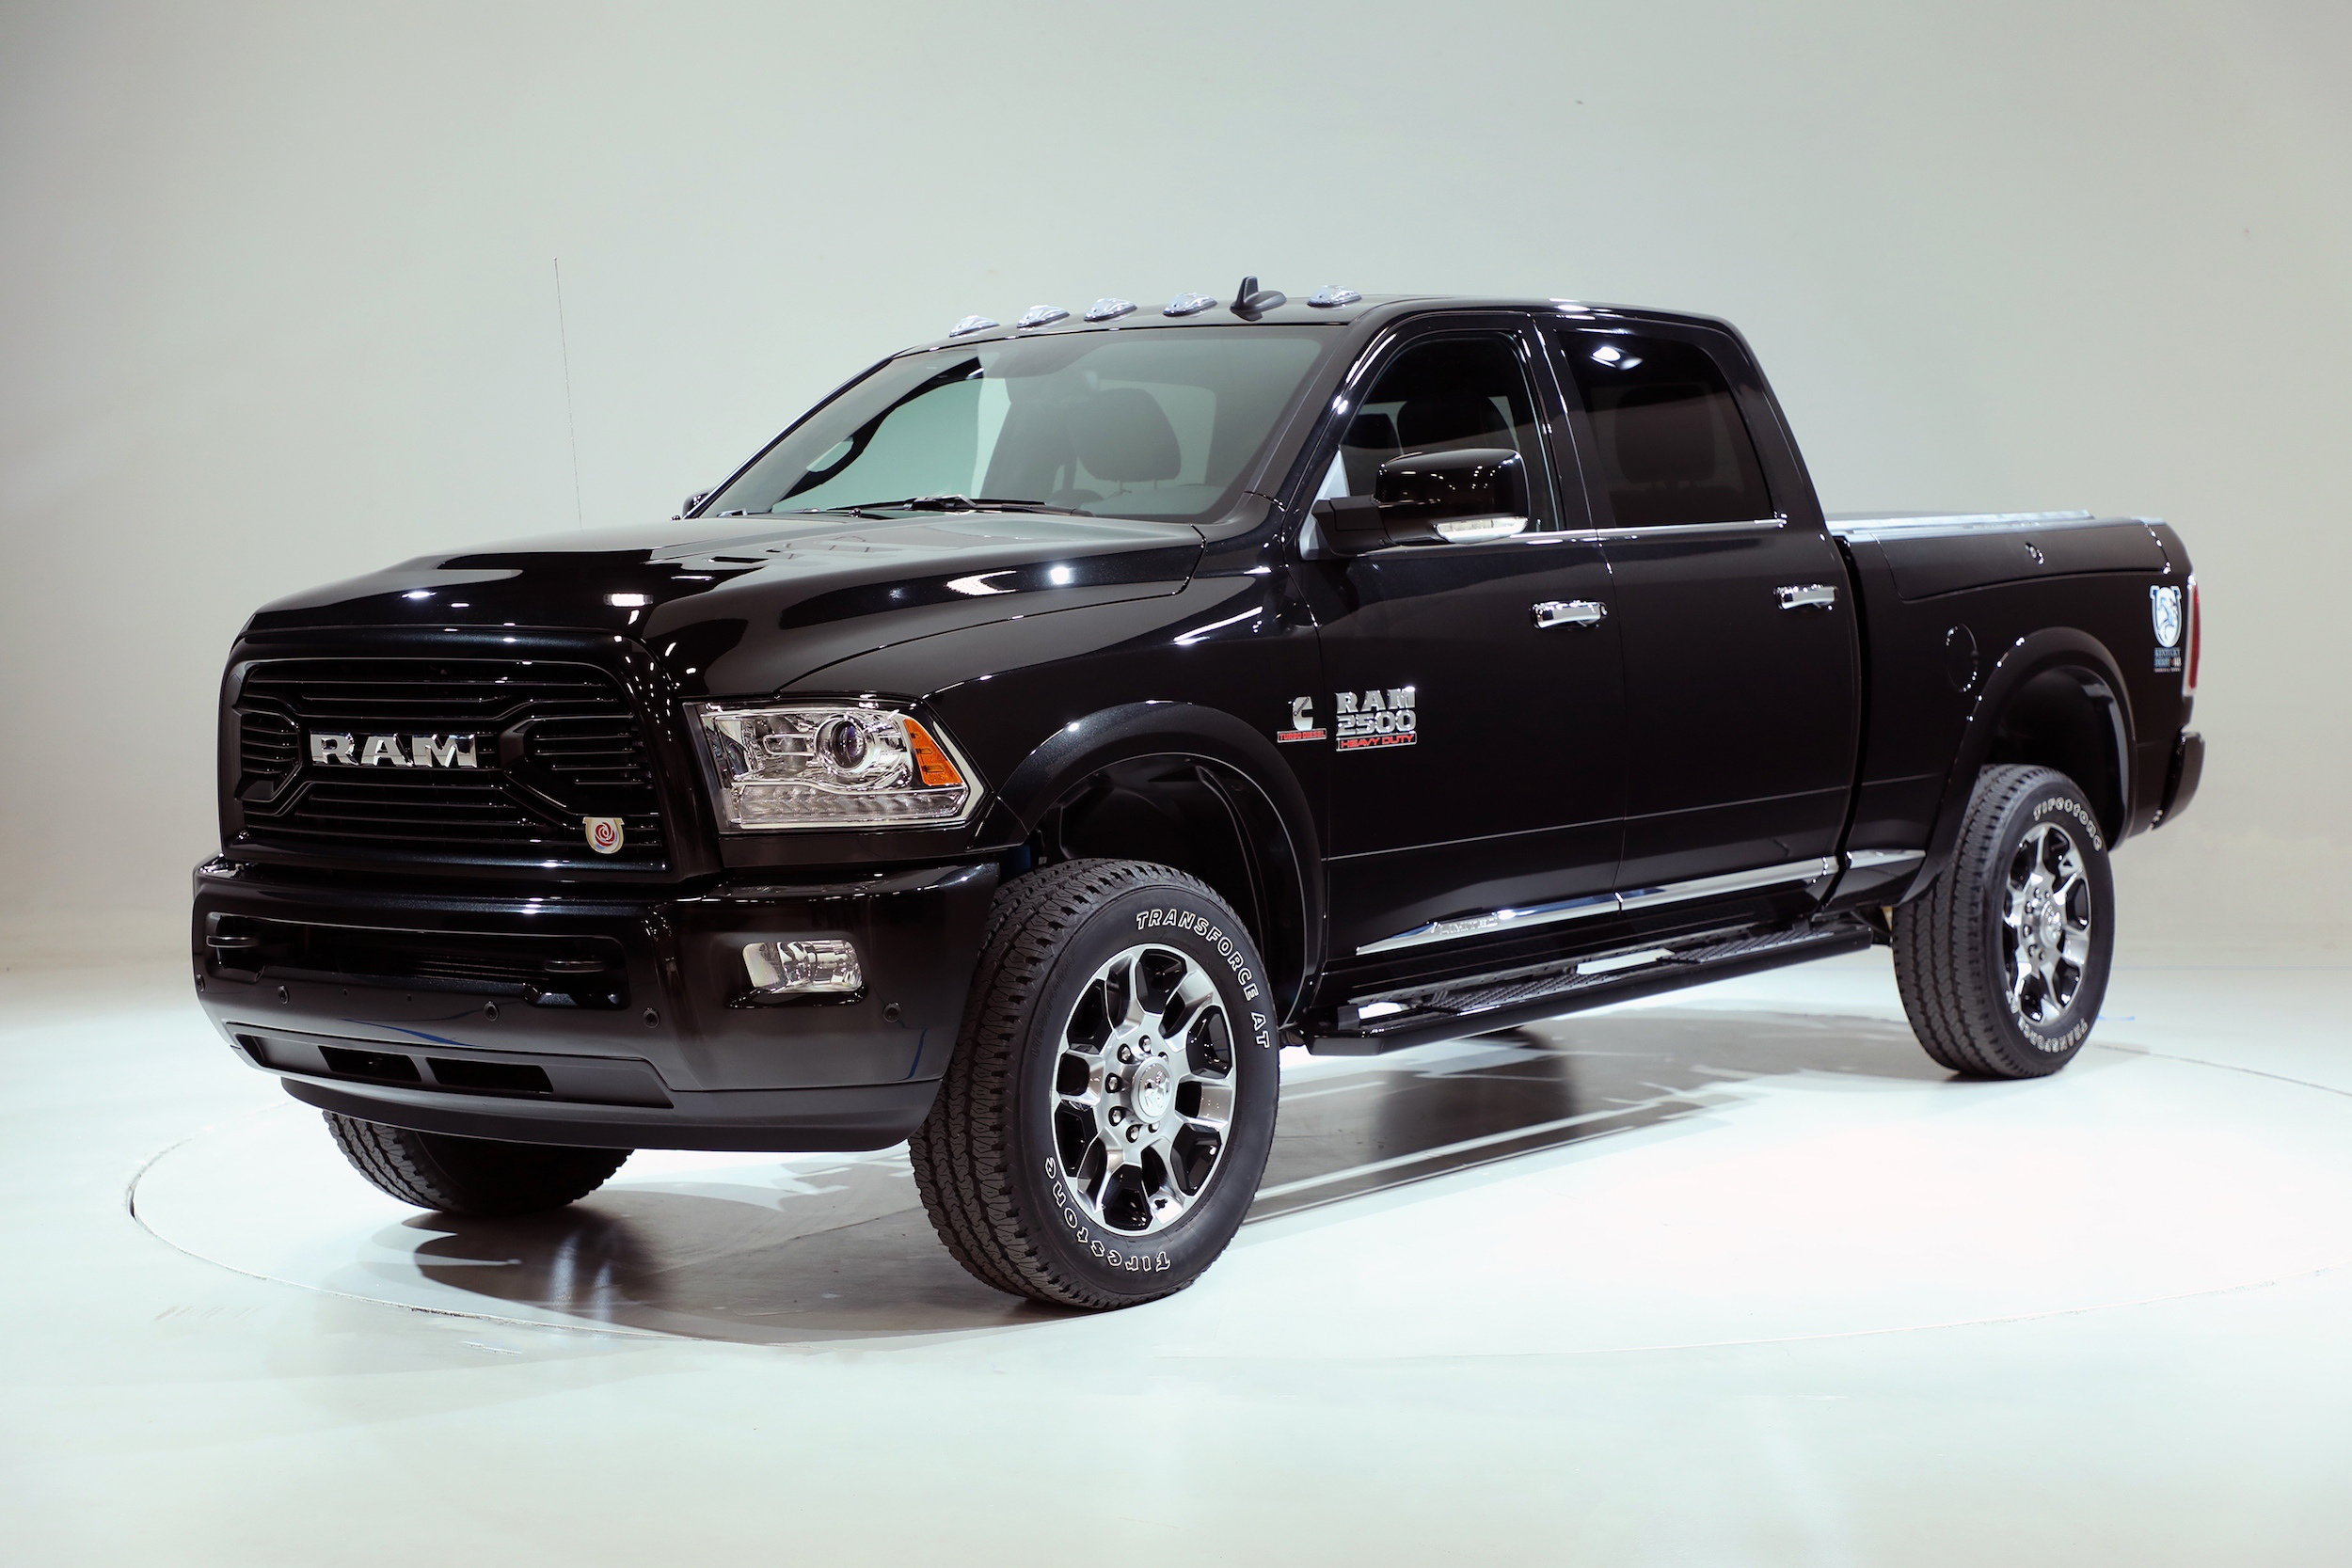 Ram unveils one-of-a-kind Kentucky Derby Edition 2500 Limited